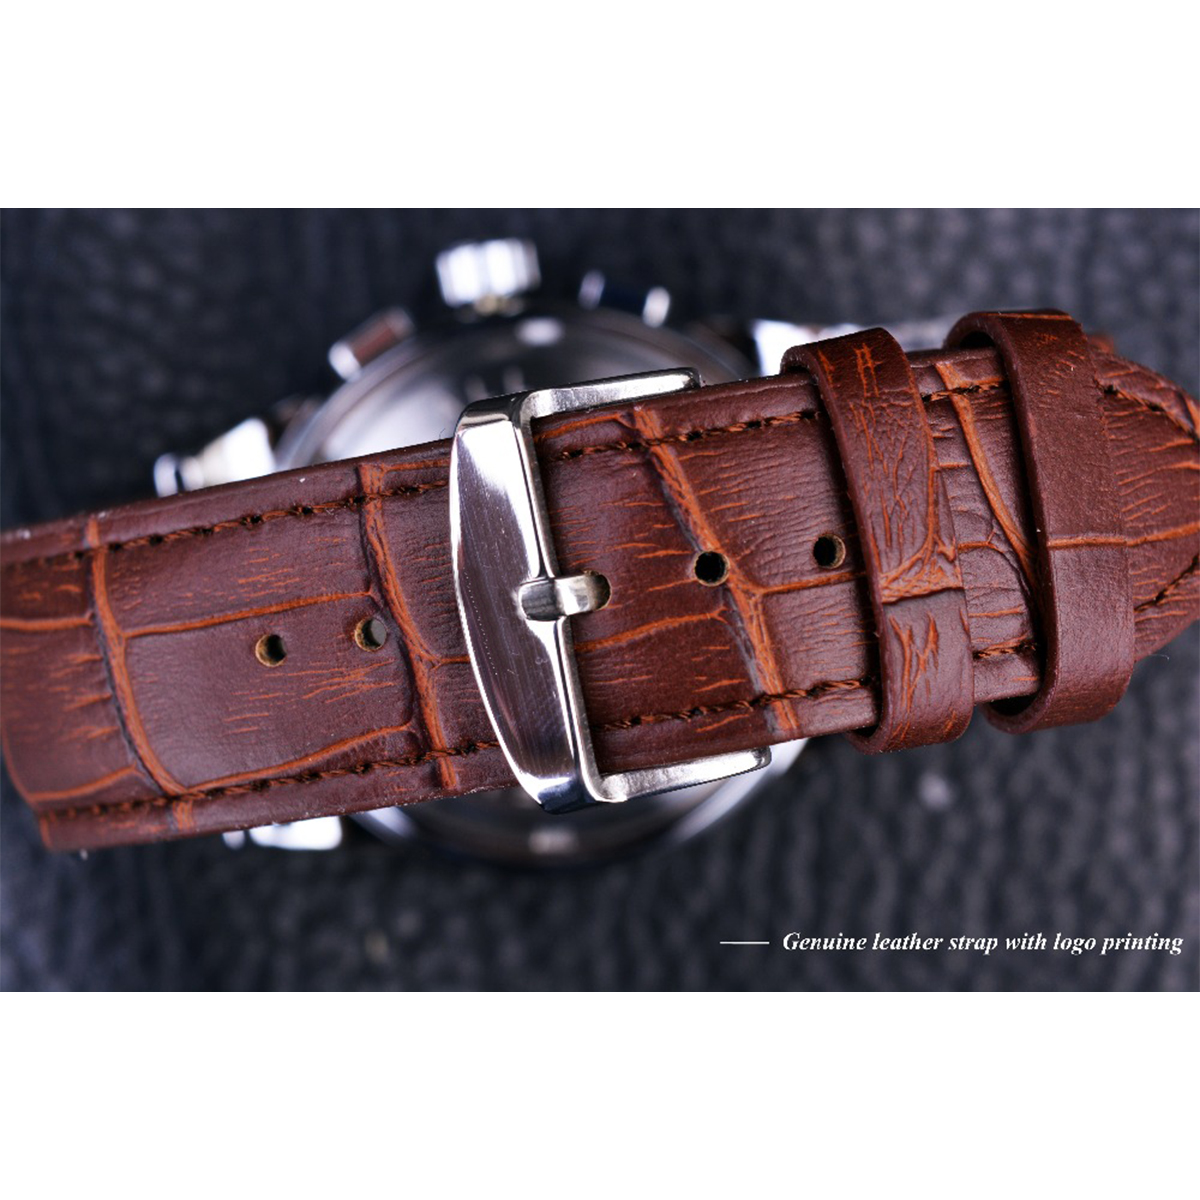 Forsining Moon Phase Shanghai Movement Rose Gold Case Brown Genuine Leather Strap Mens Watches Top Brand Forsining Moon Phase Shanghai Movement Rose Gold Case Brown Genuine Leather Strap Mens Watches Top Brand Luxury Auotmatic Watch